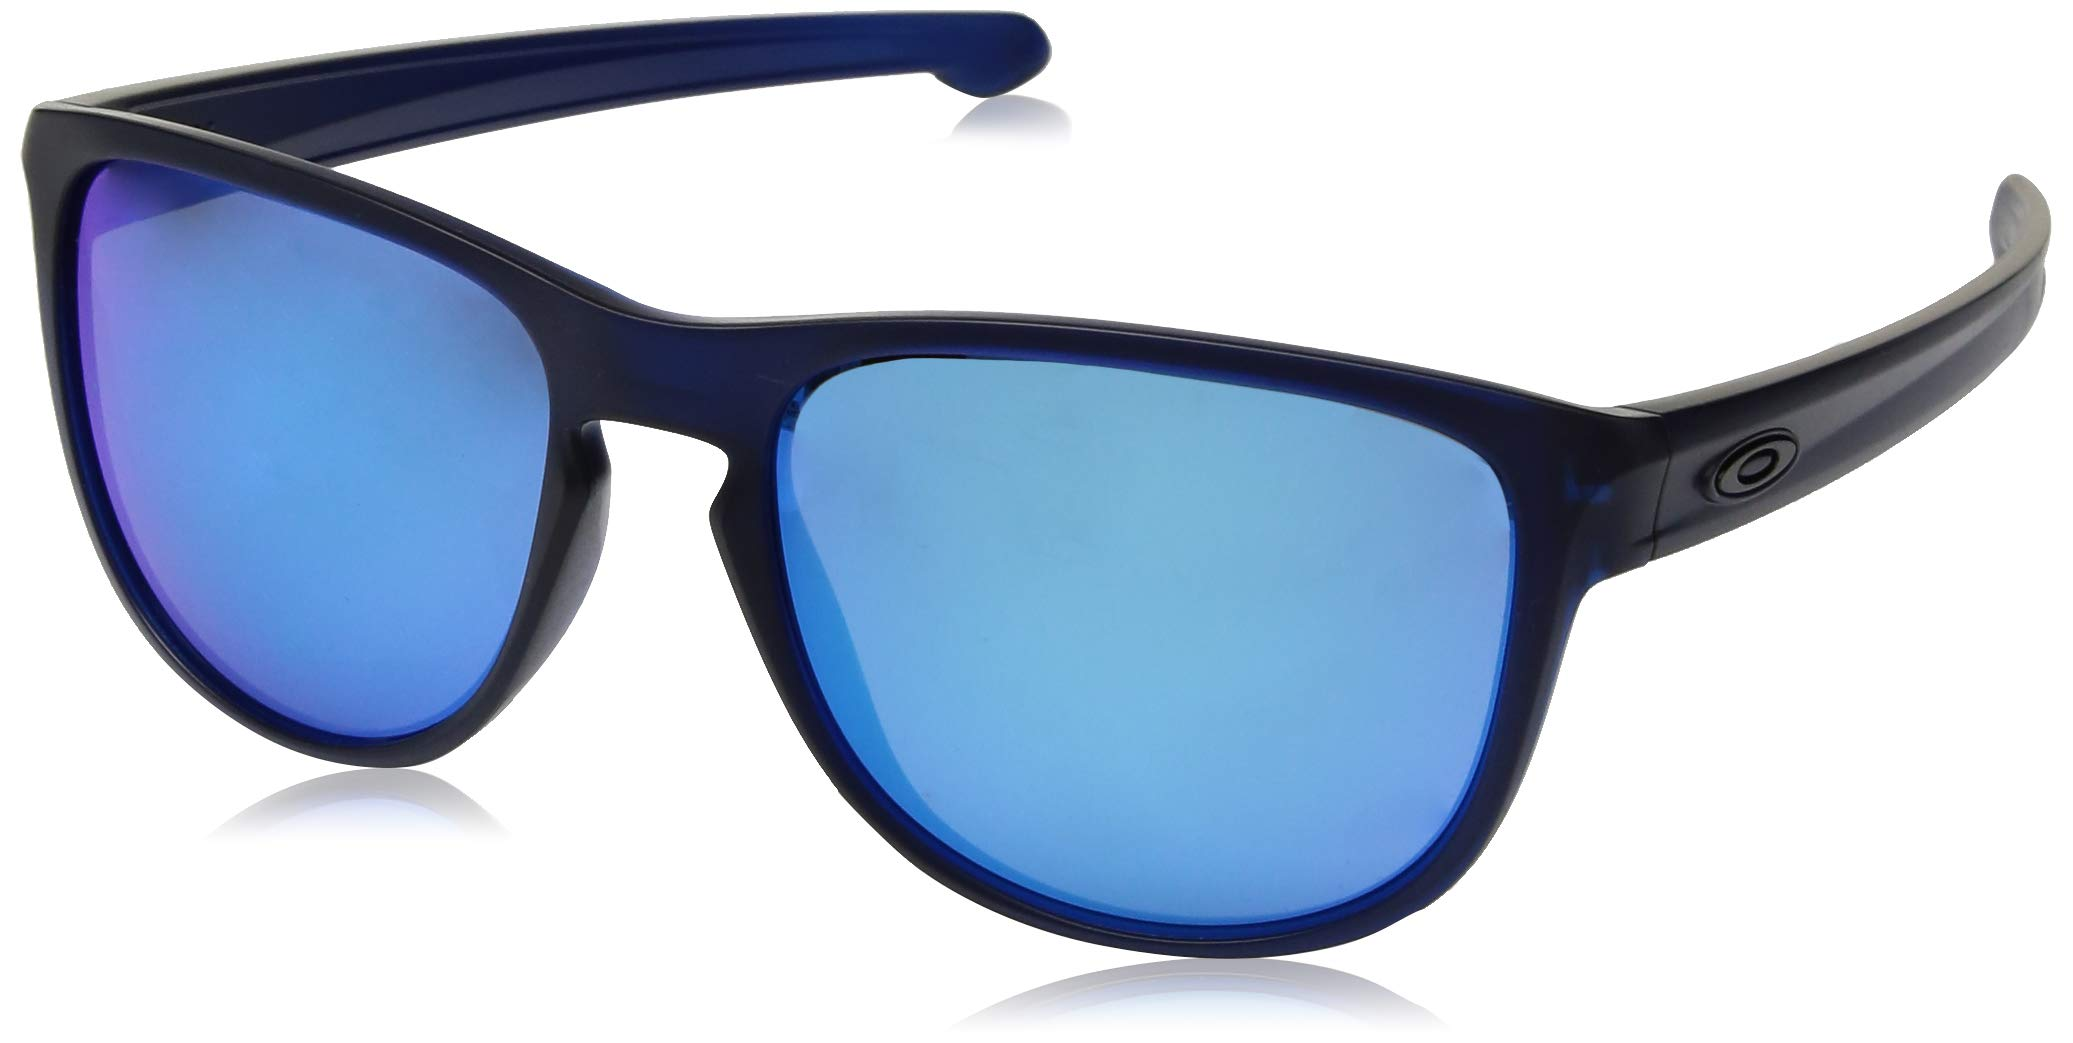 Oakley Men's Sliver R Non-Polarized Iridium Rectangular Sunglasses, Matte Translucent Blue, 57 mm